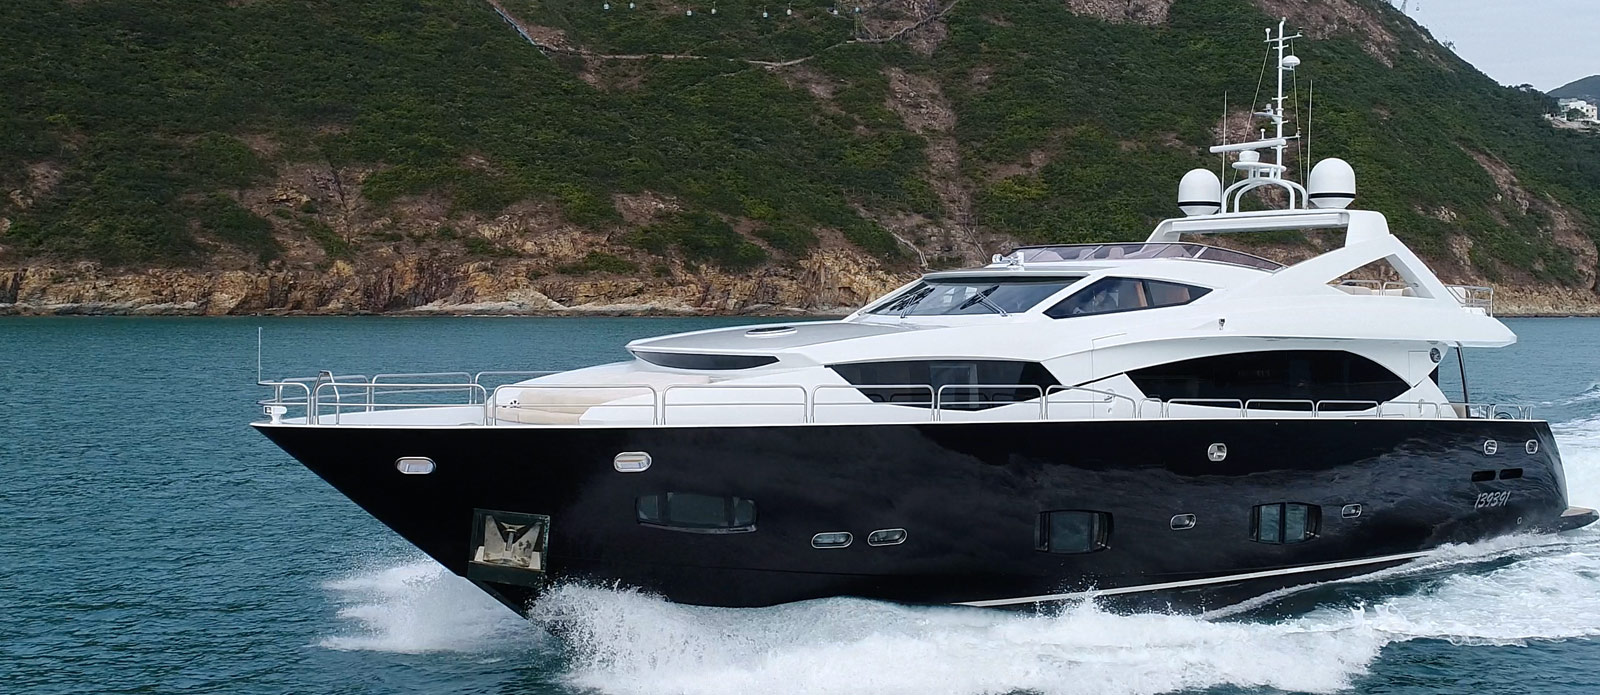 Sunseeker-30-Metre-Yacht-Coraysa-Side-Profile-Running